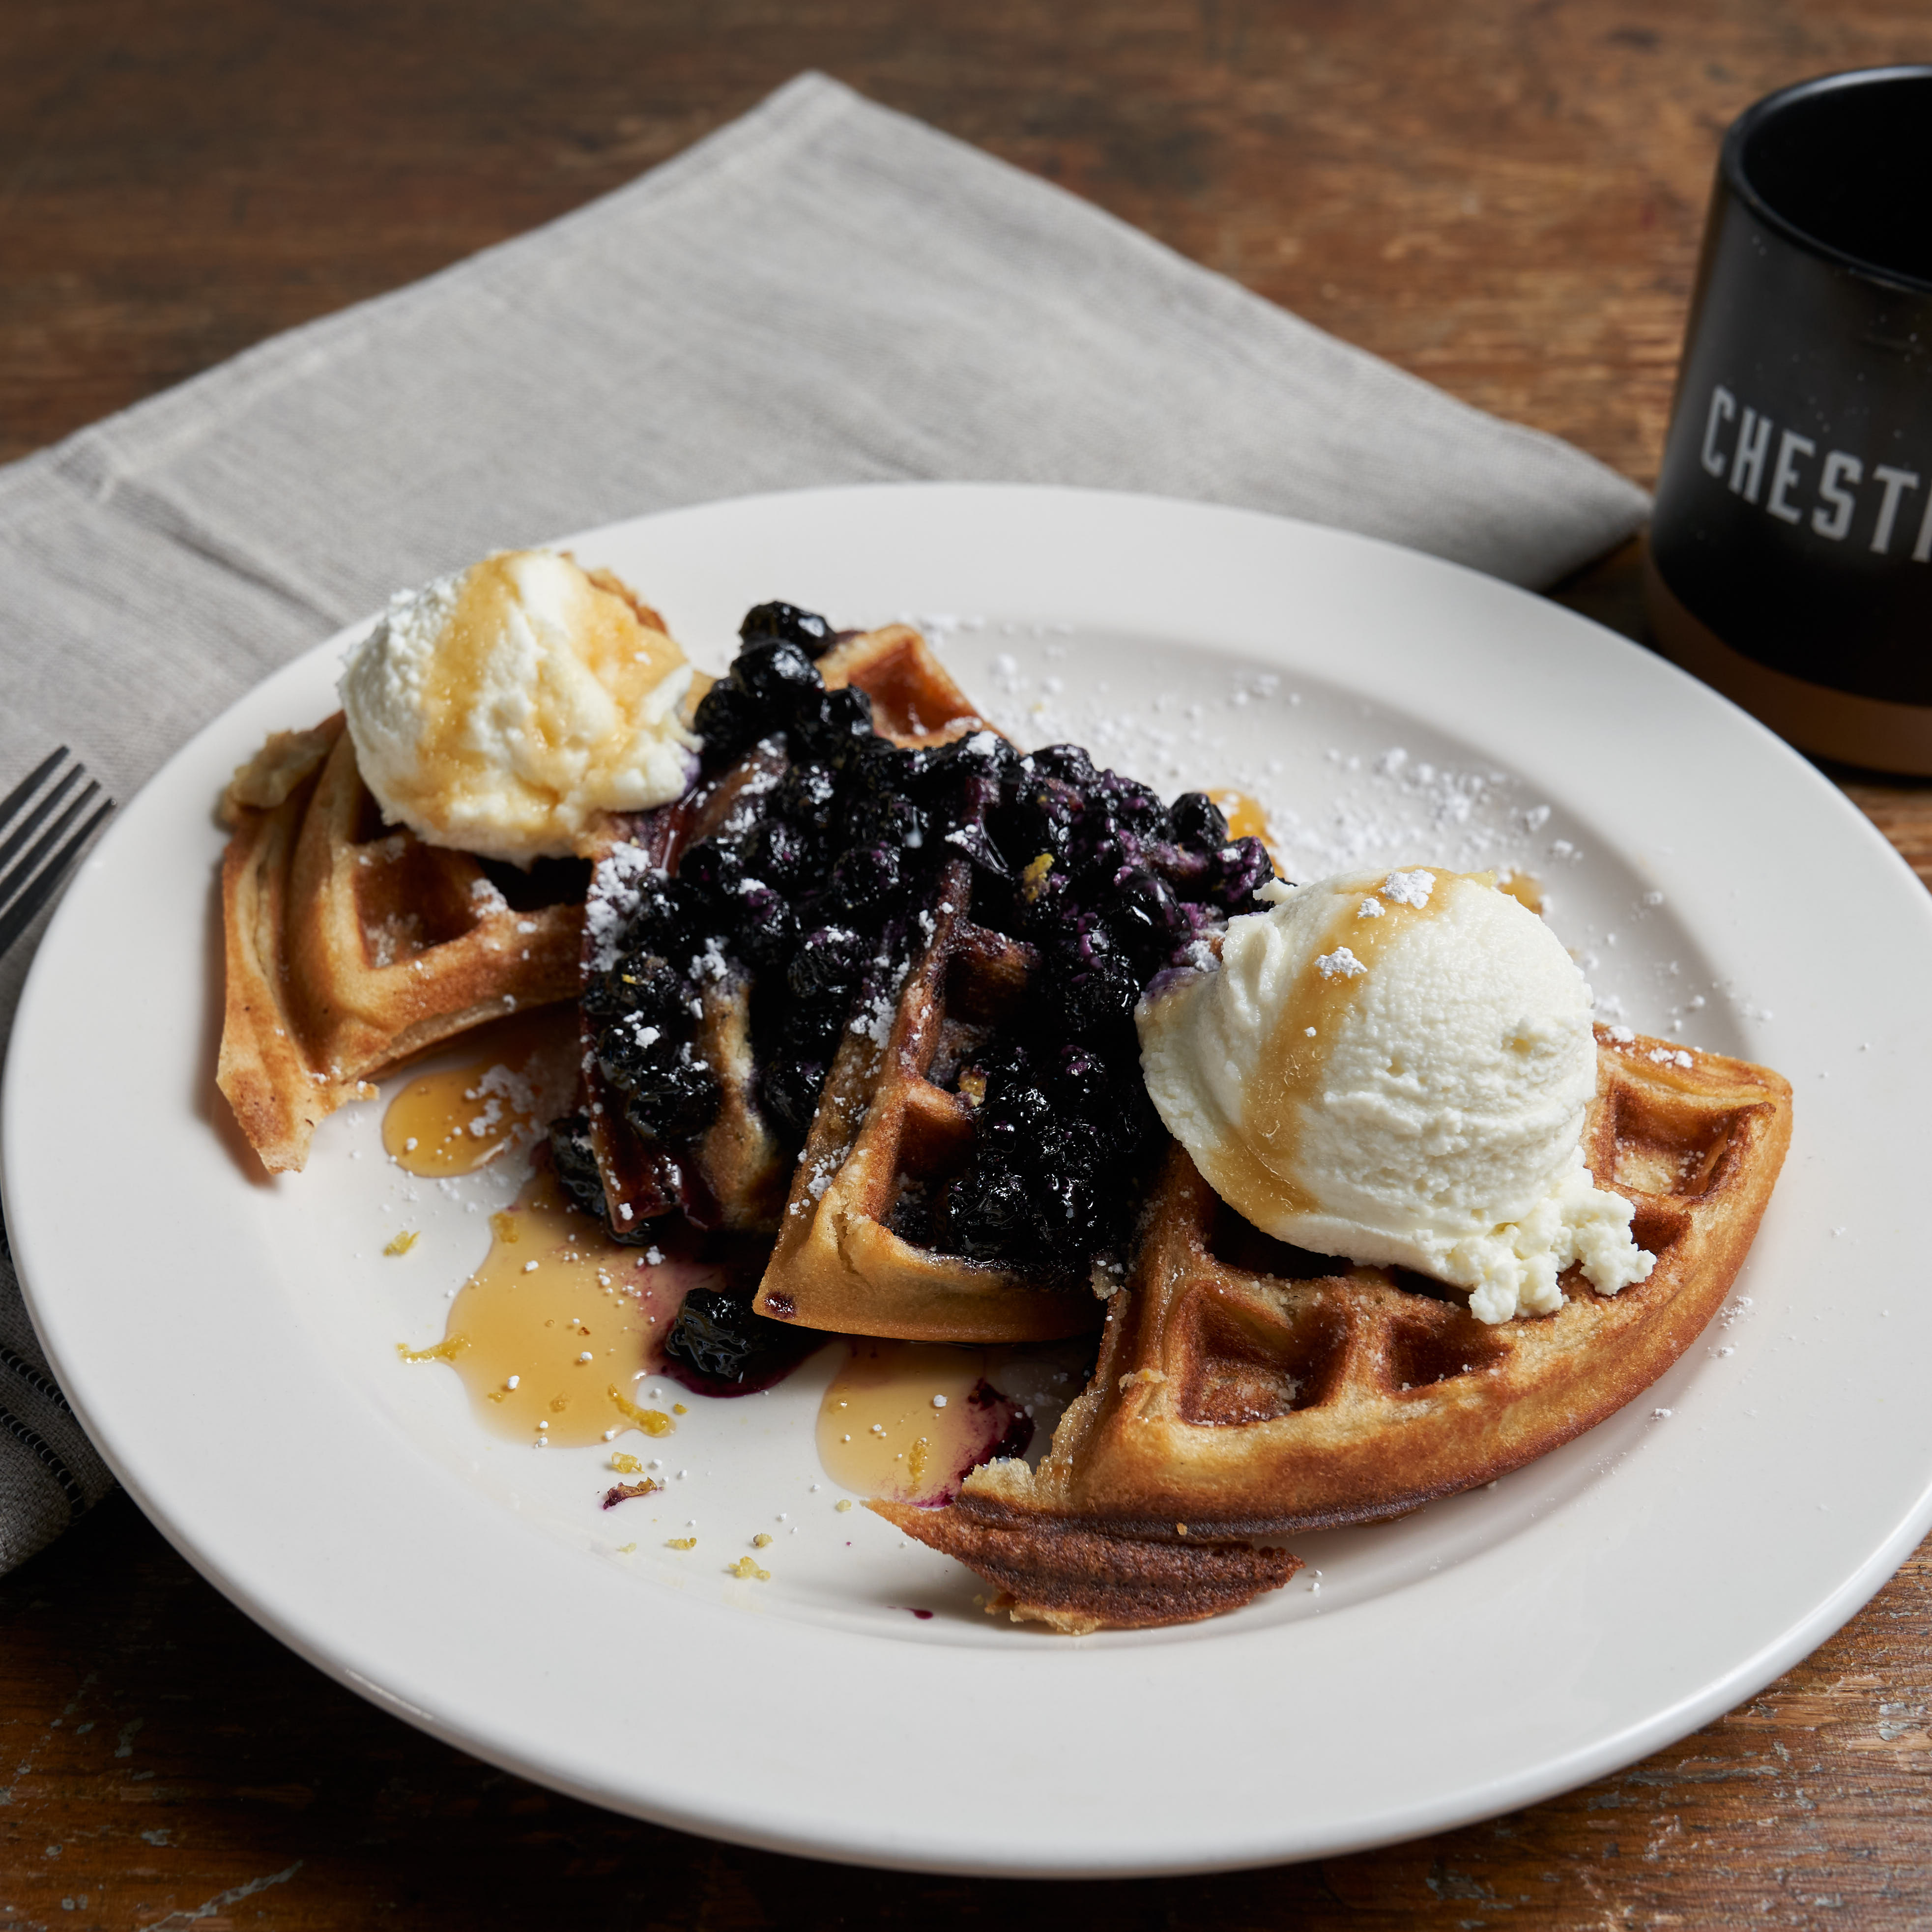 Pictured is the lemon ricotta waffles covered in a blue berry compote with whipped cream and coffee